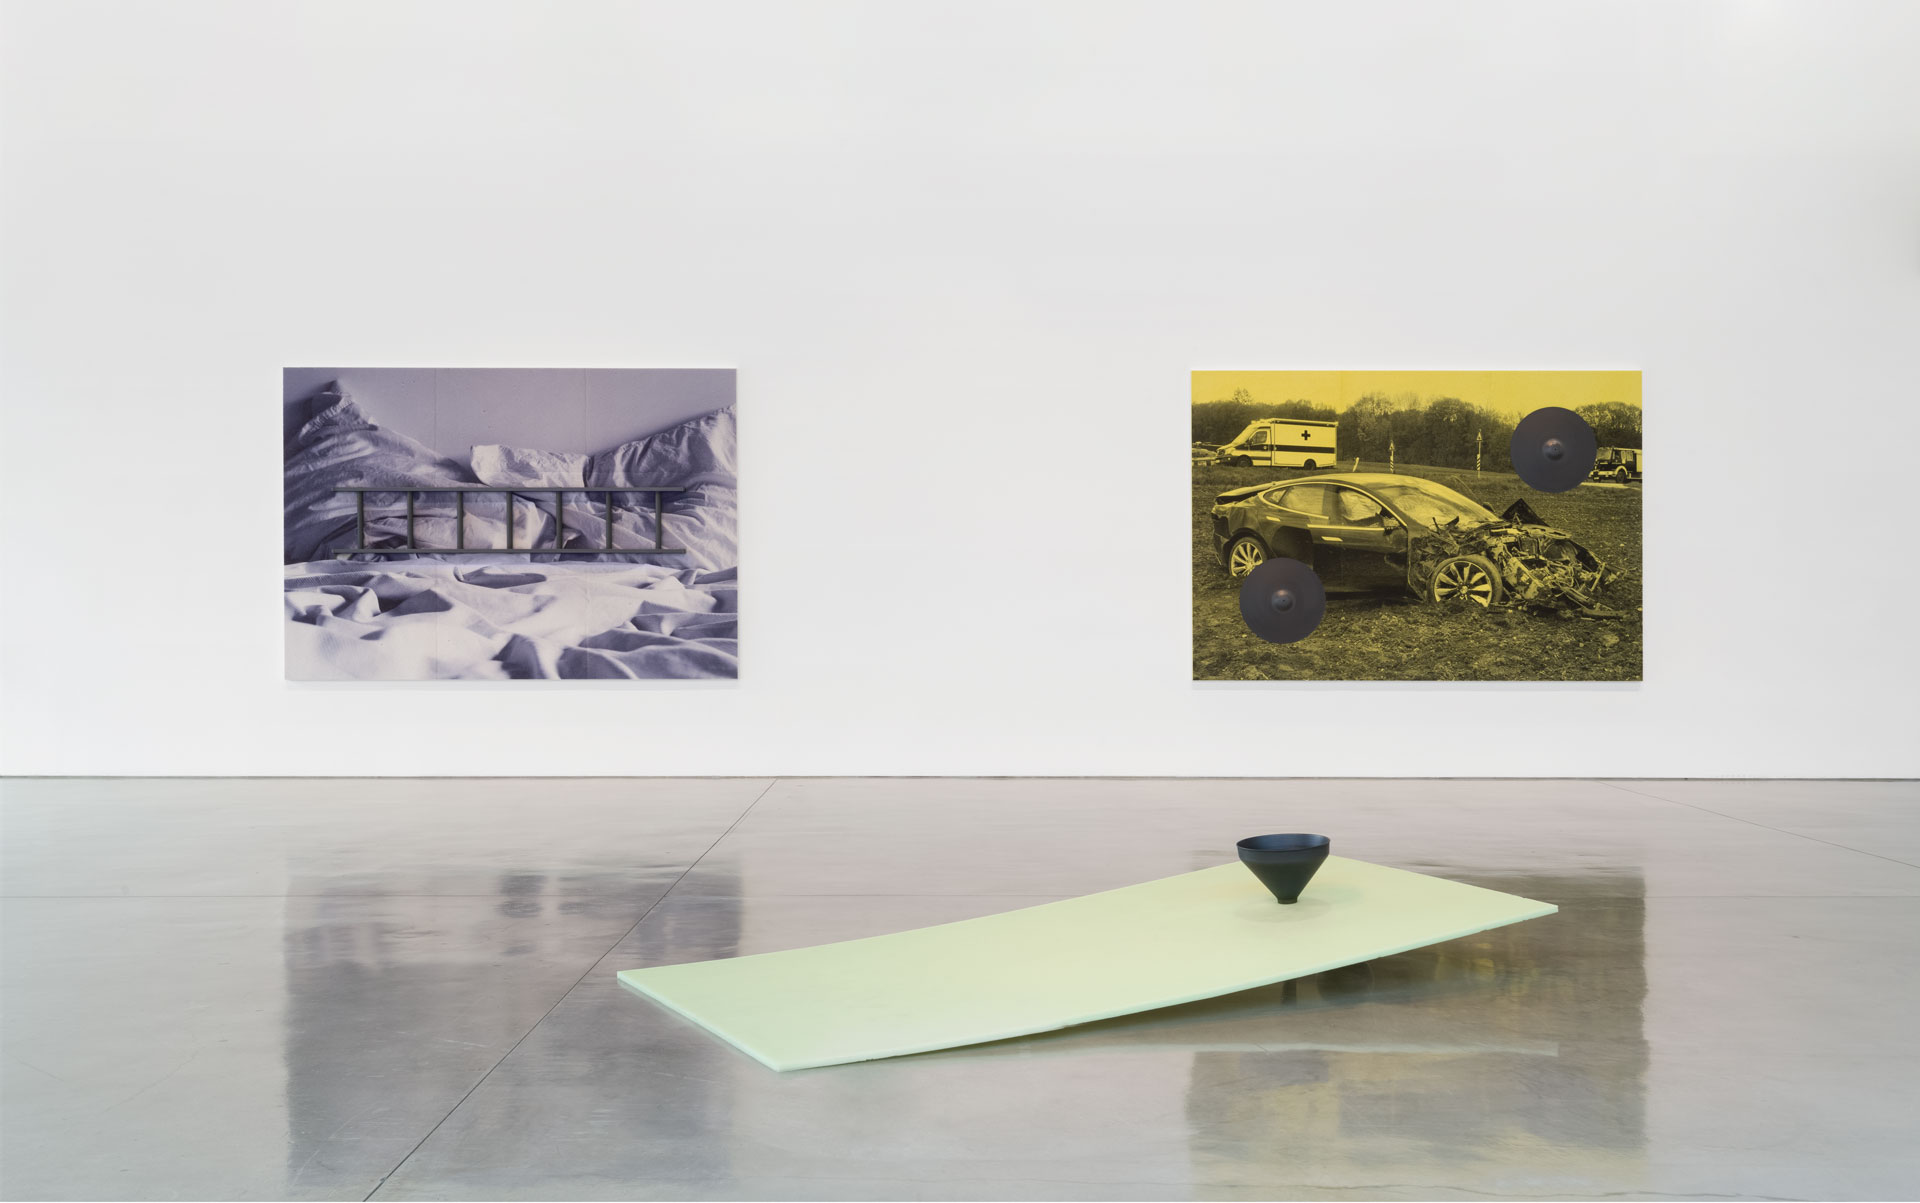 Pun intended: Adam McEwen's Nighthorses at Gagosian Beverly Hills